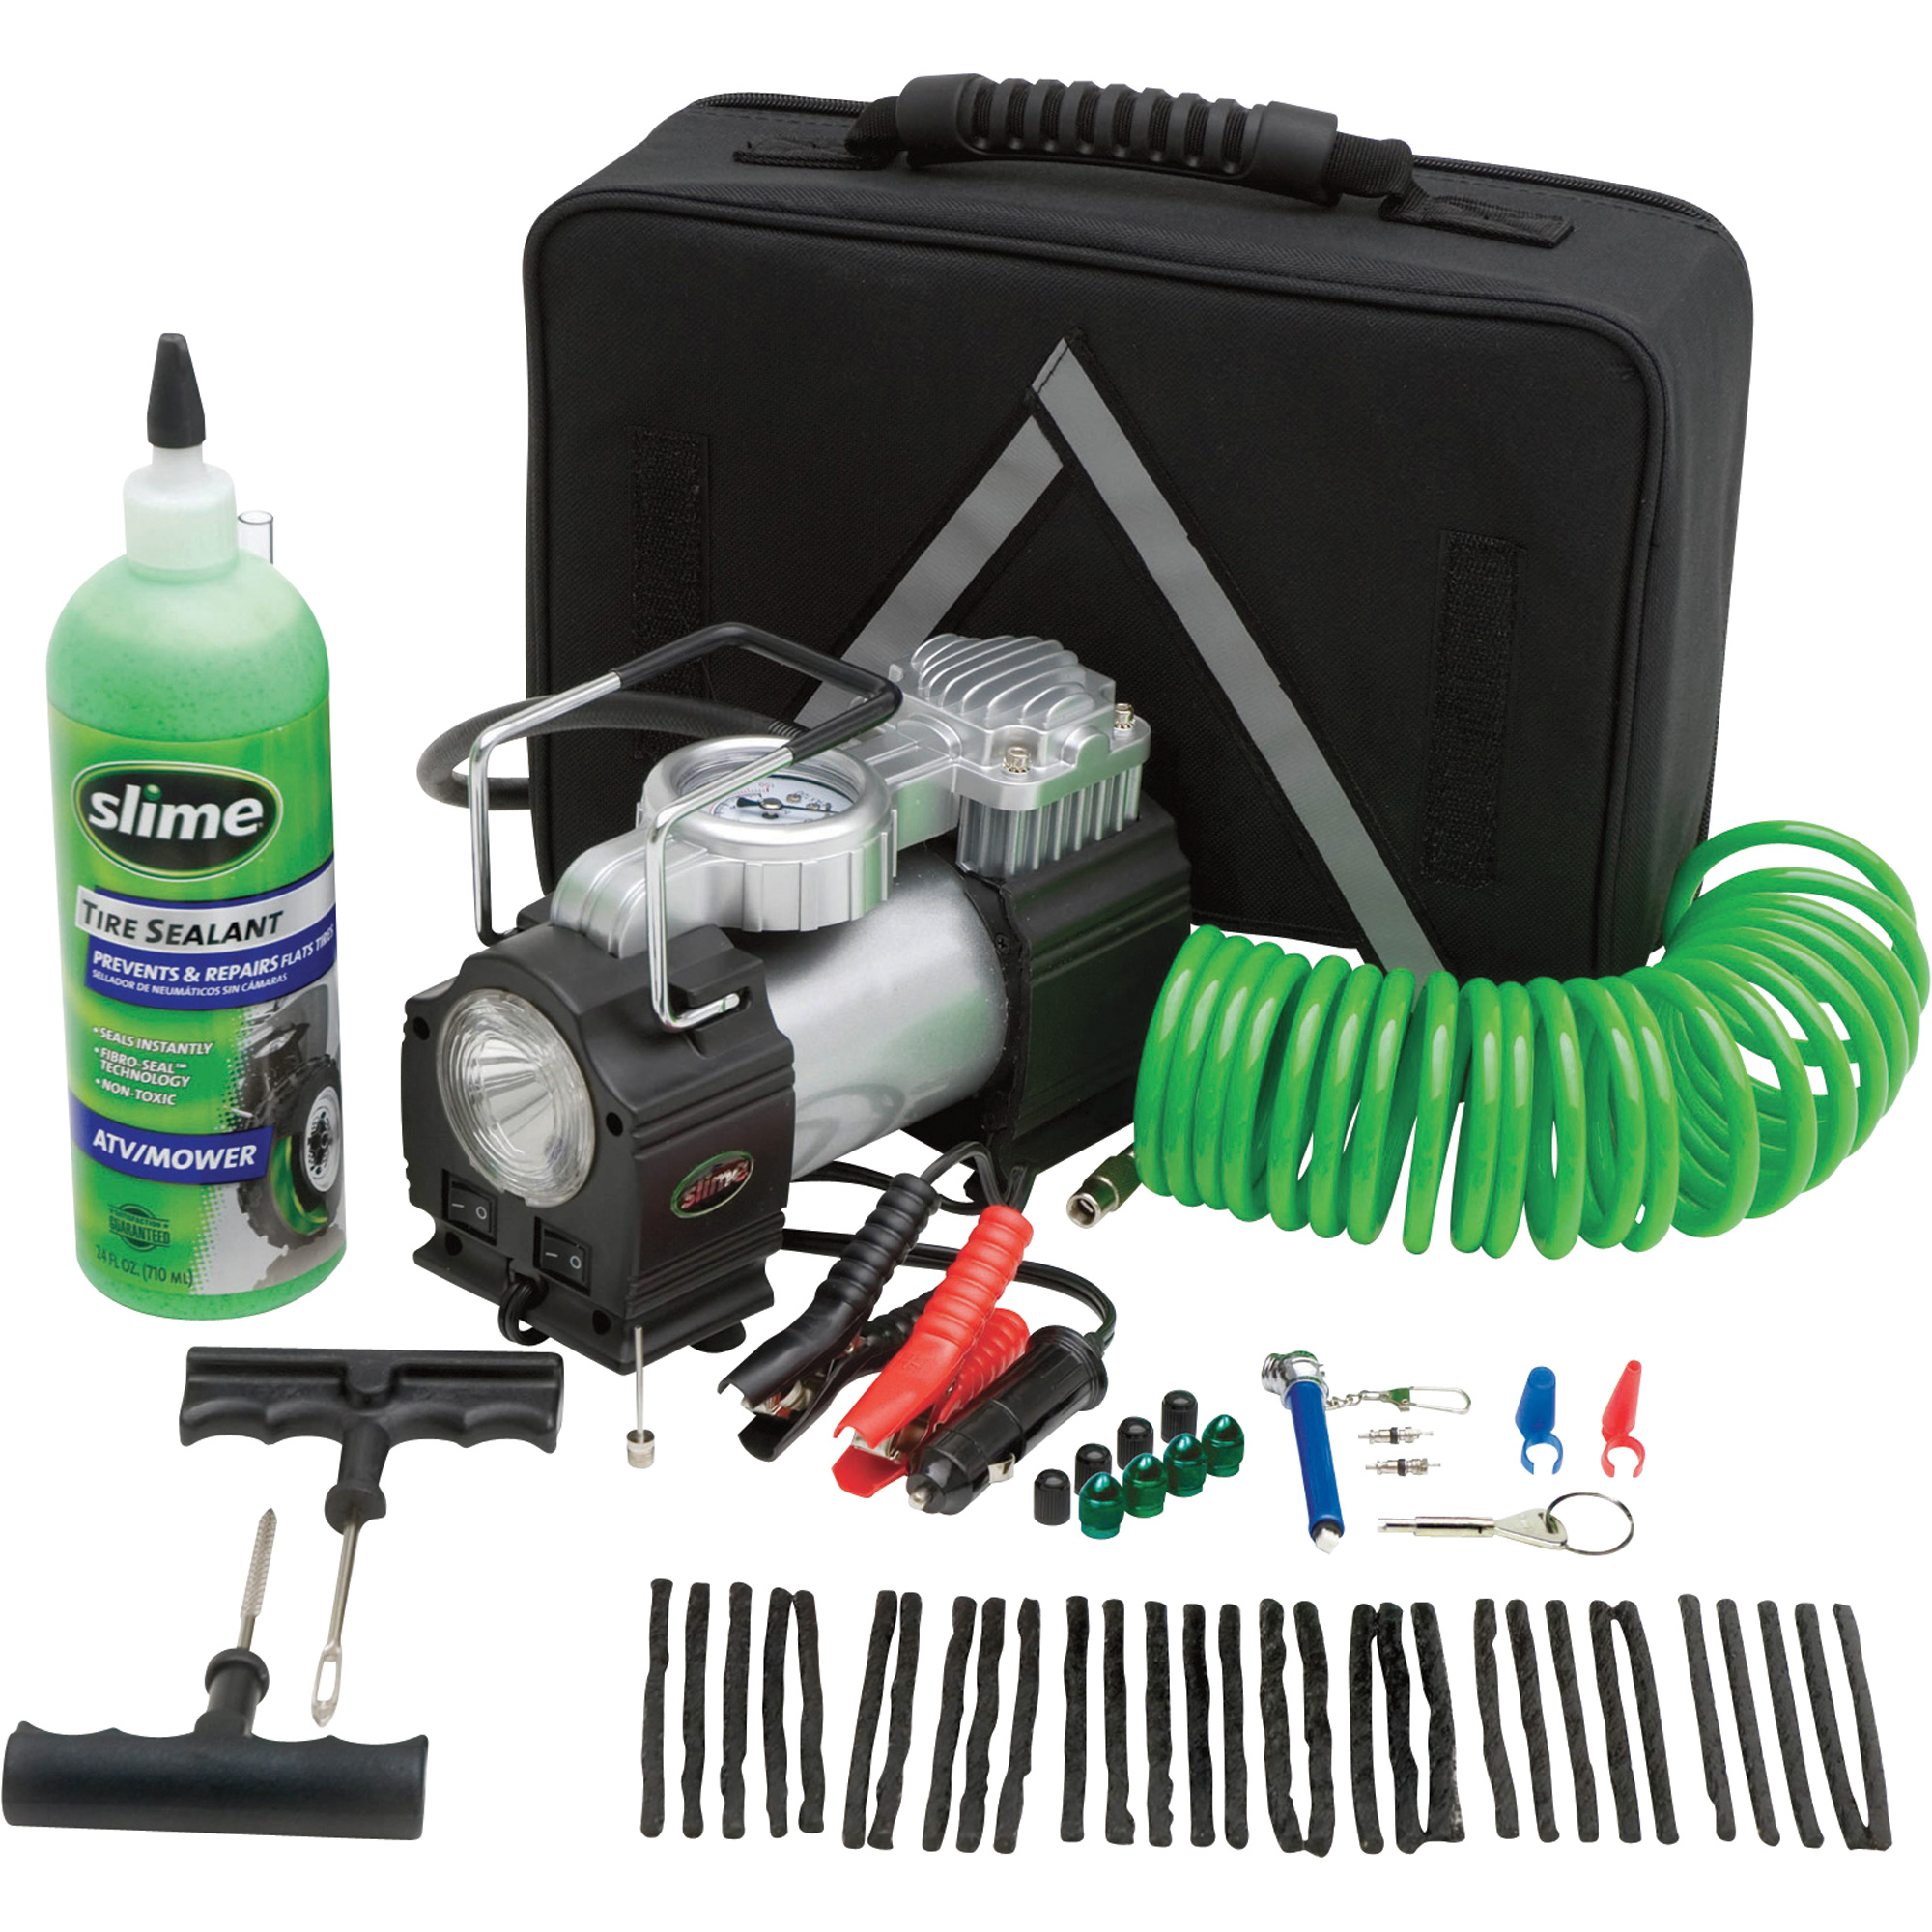 Tools for Repairing Flat or Punctured Tires On the Go